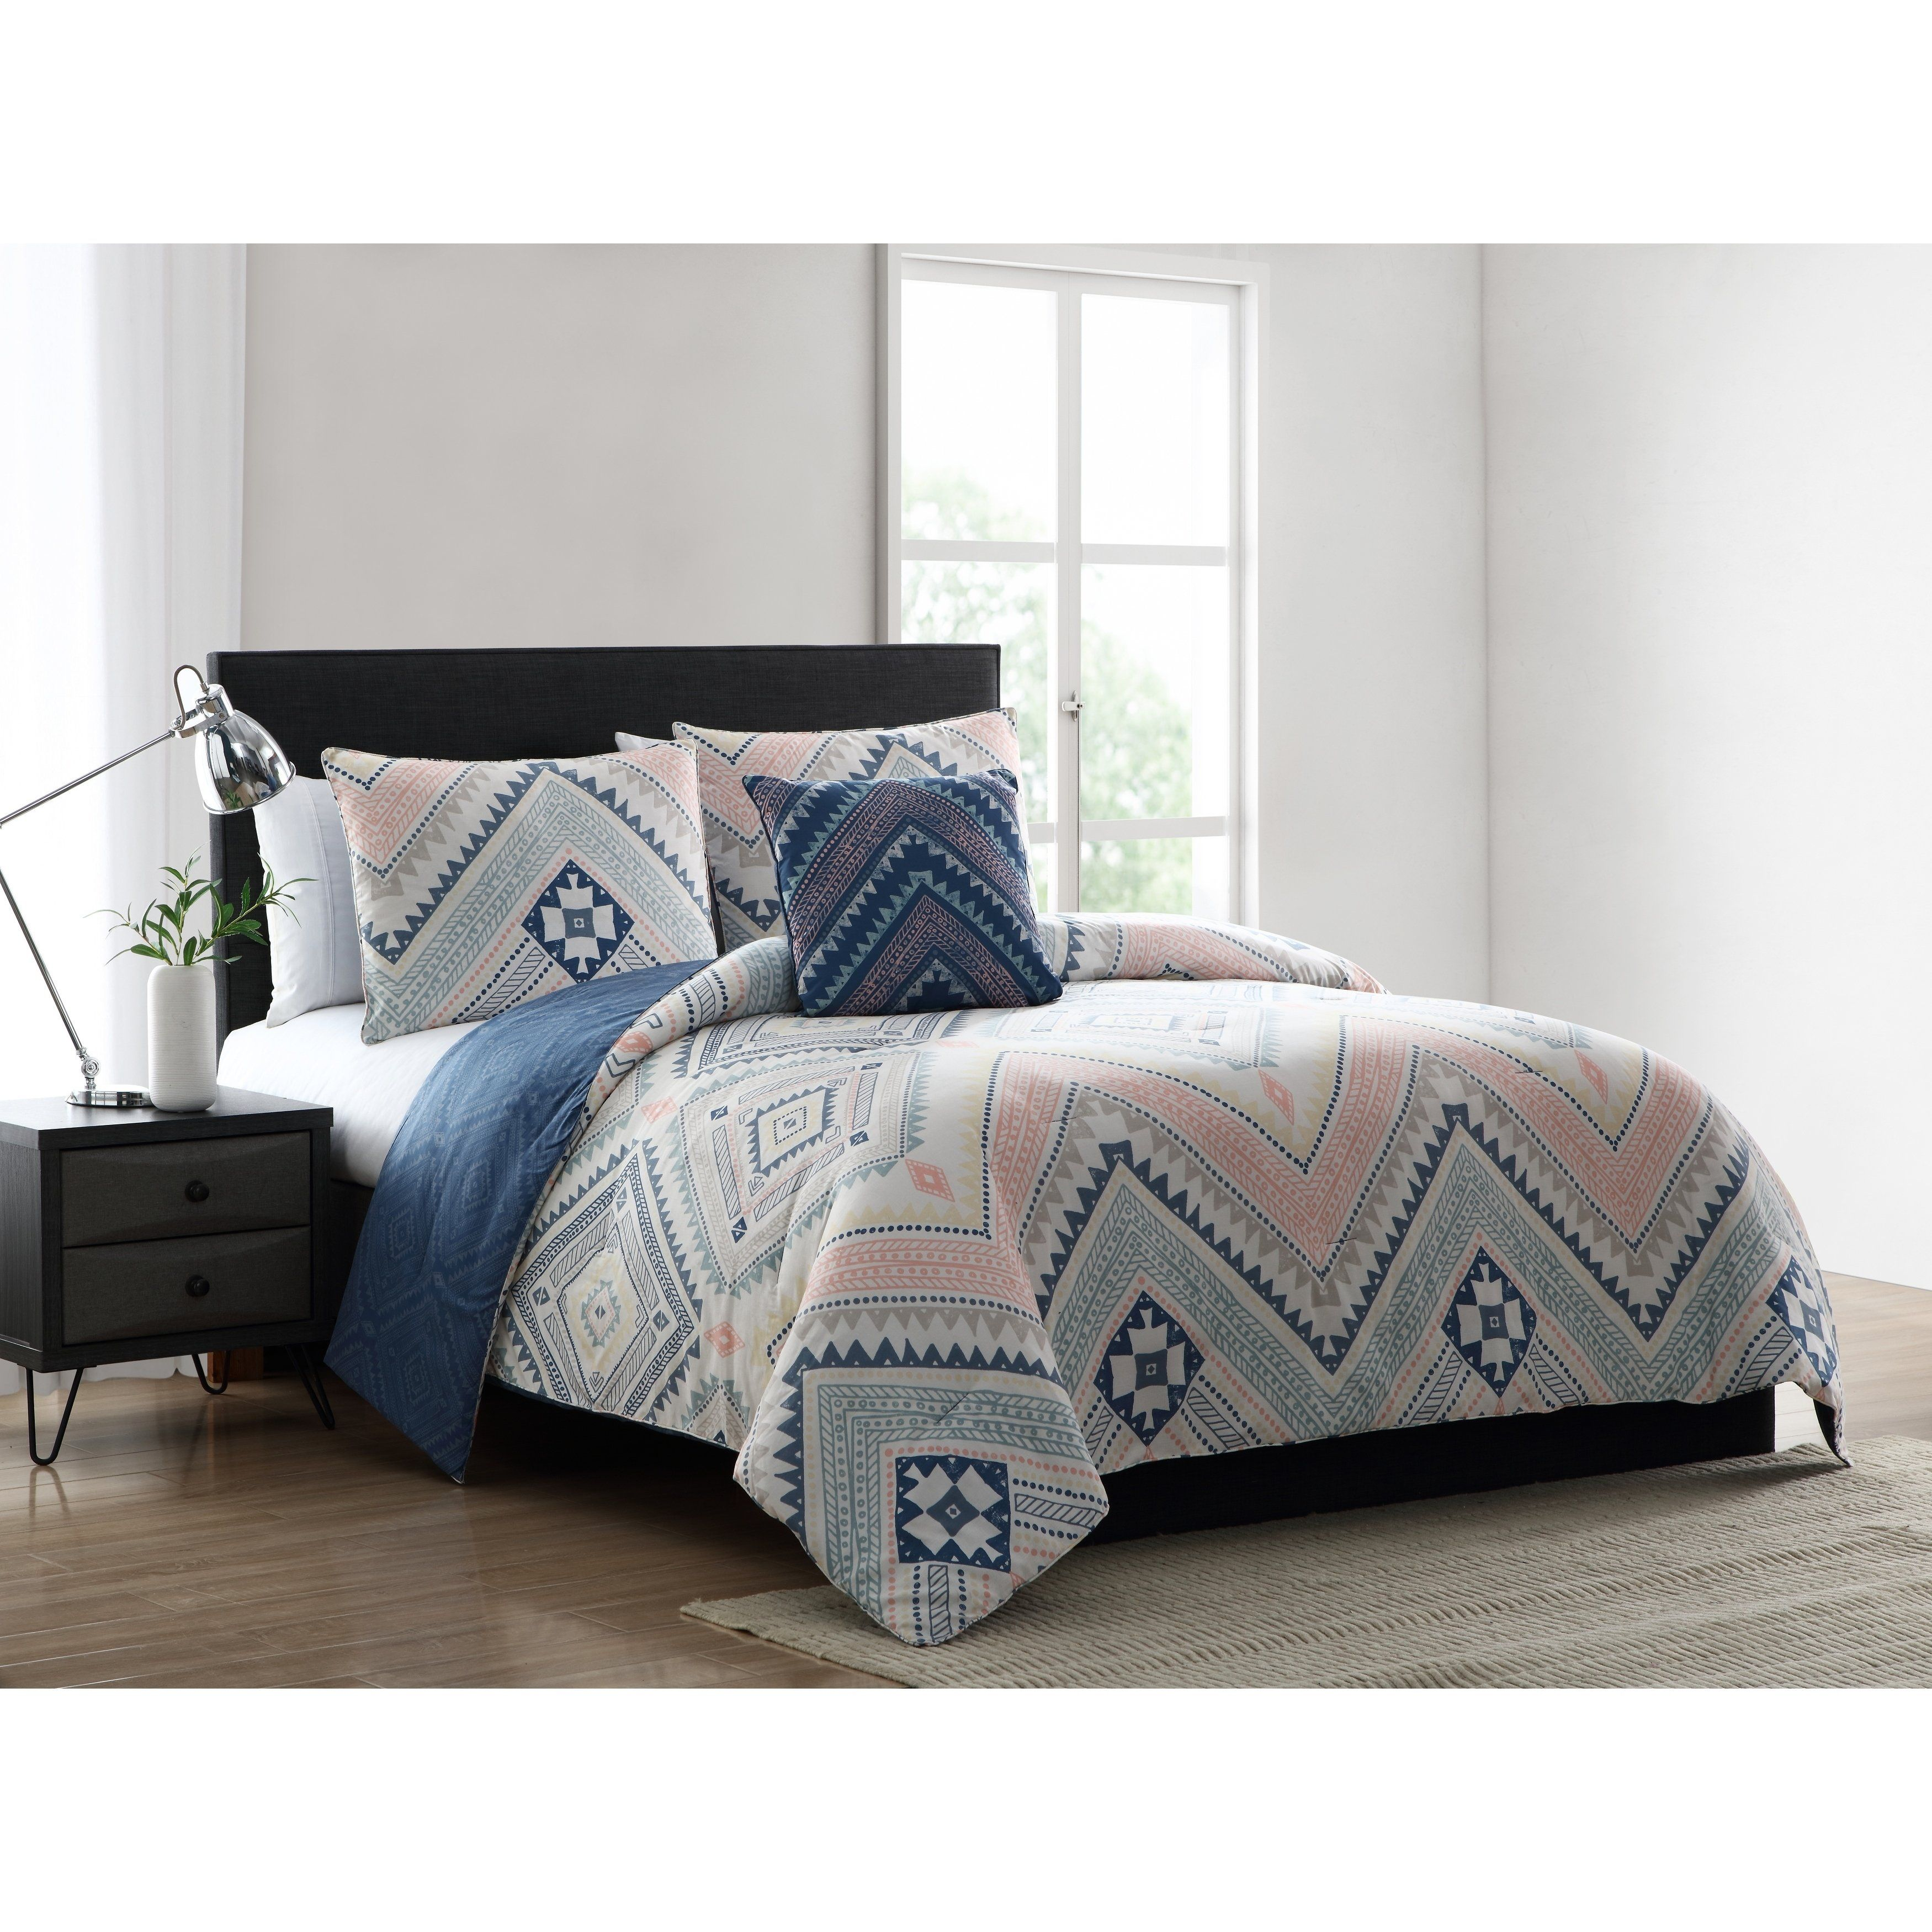 Asher Home Sally Blue And Pink Tribal Print Comforter Set Full